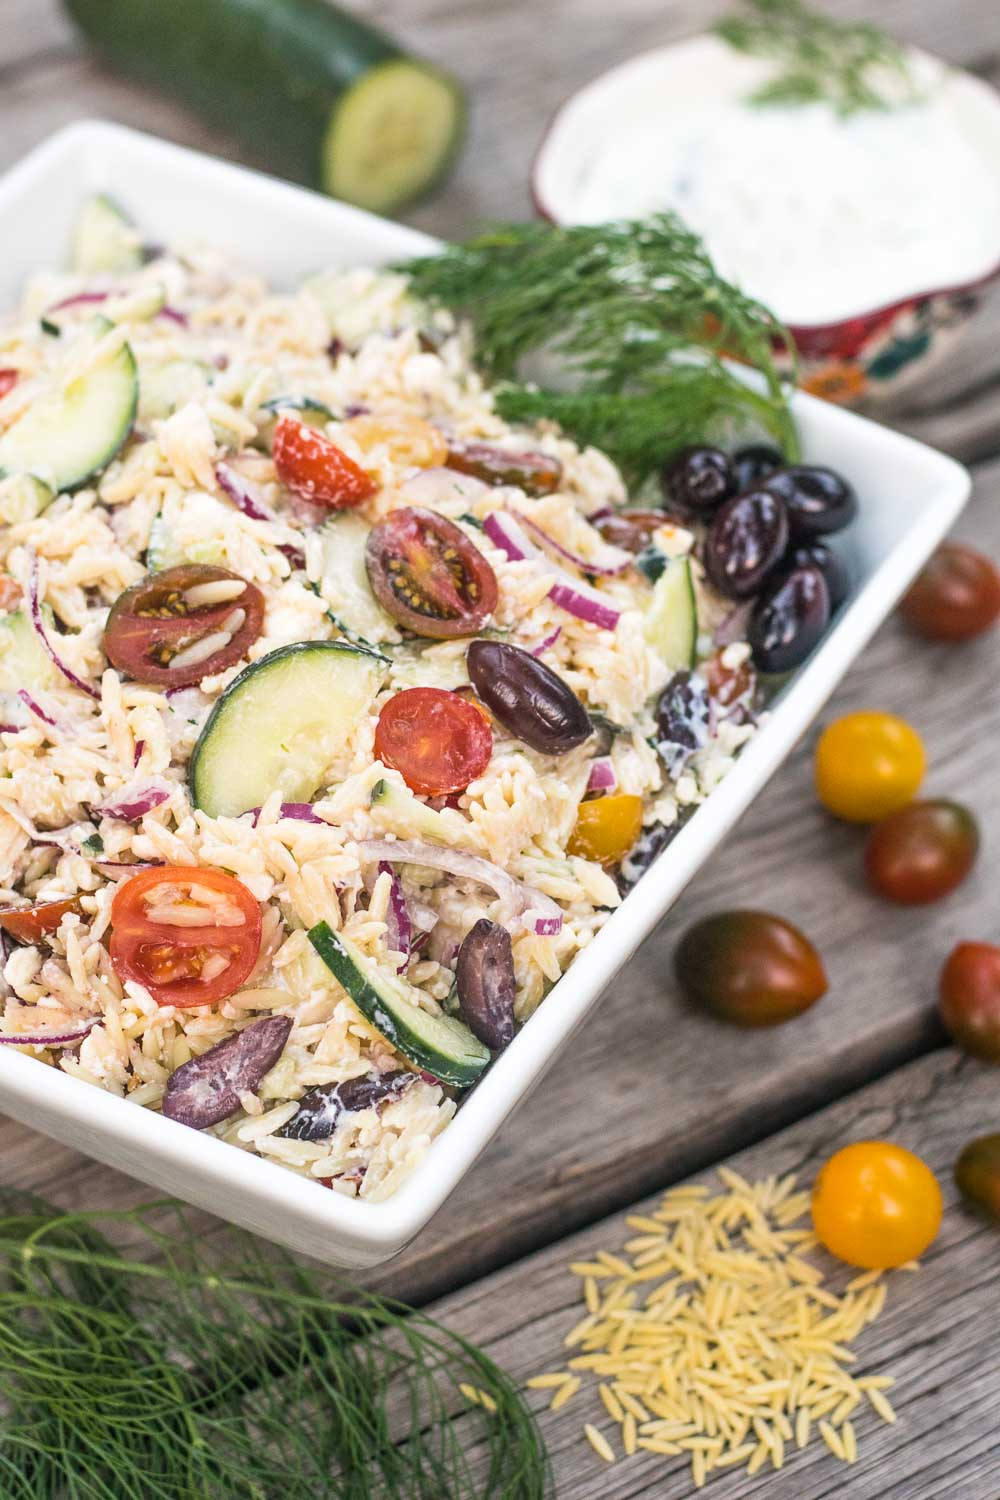 Greek-inspired pasta salad starring homemade tzatziki - aka delicious tangy yogurt sauce - that's loaded with fresh veggies and perfect for picnics!